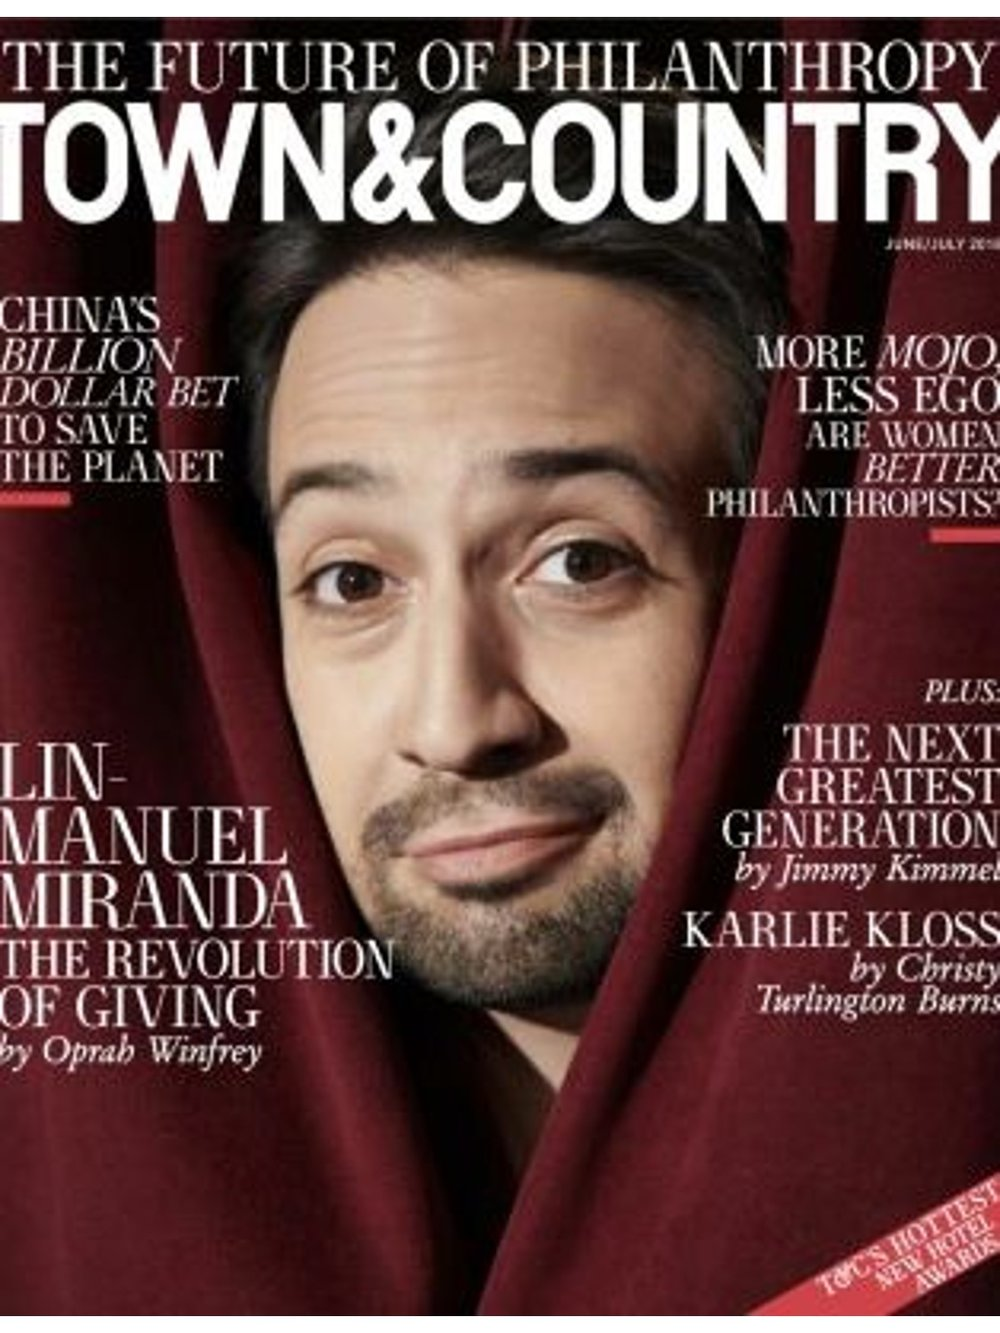 Town and Country Cover June 2018 Maison Alma.jpg